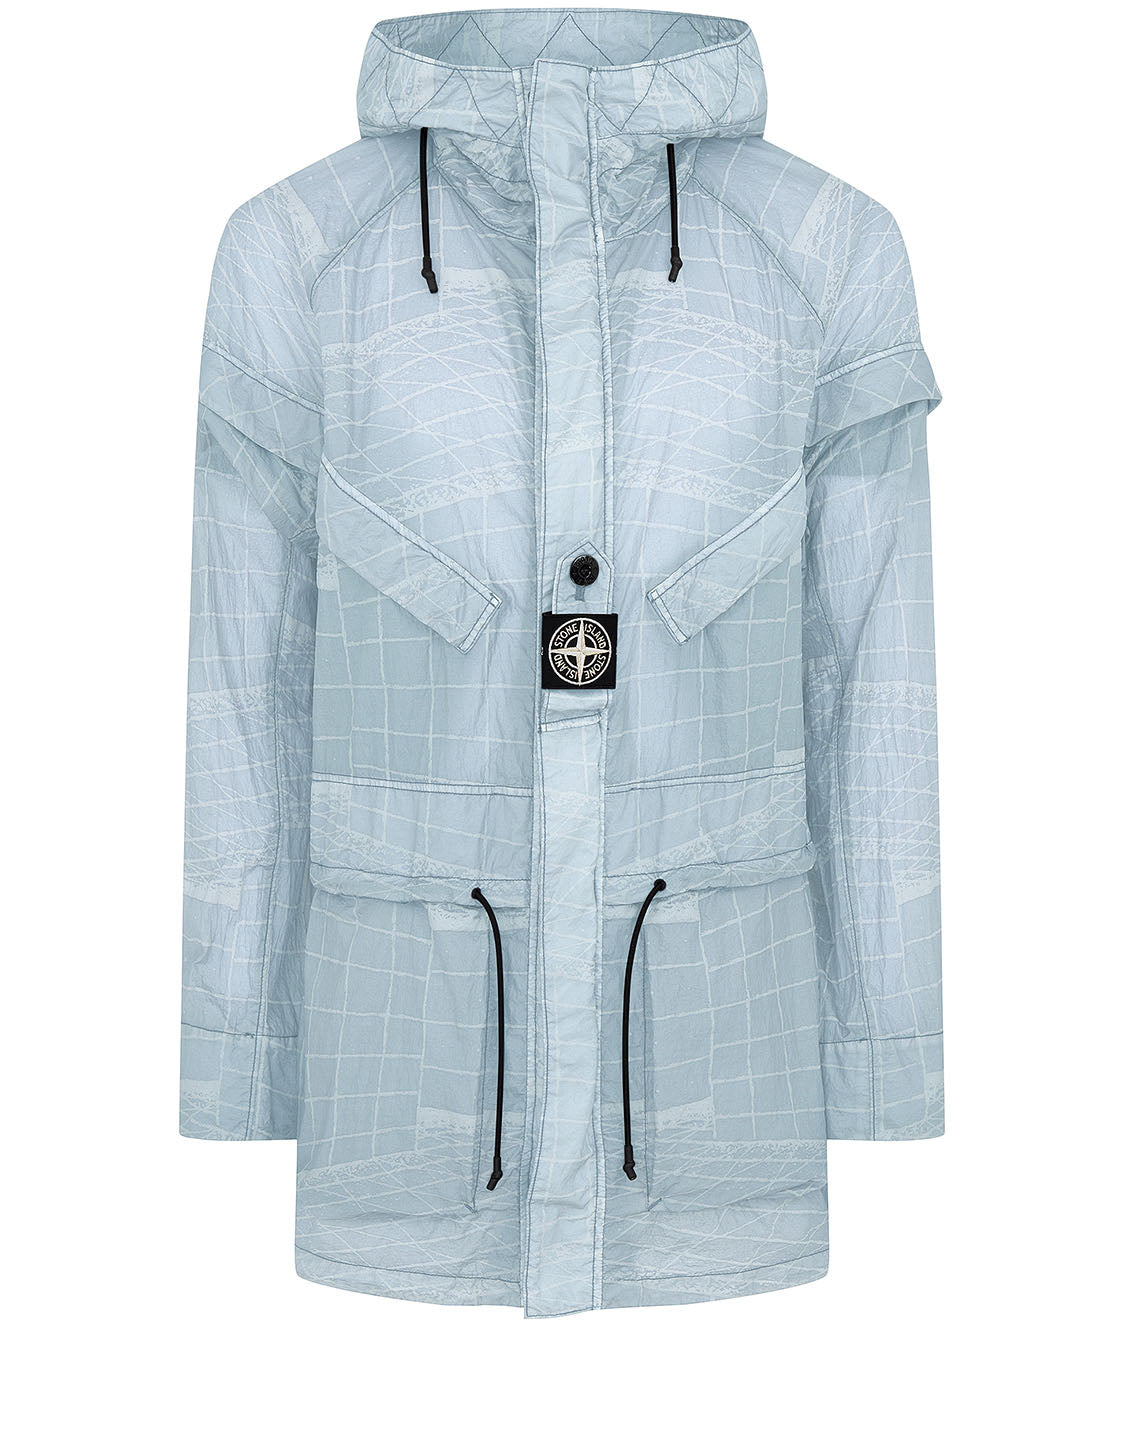 42999 REFLECTIVE GRID ON LAMY-TC Parka in Sky Blue